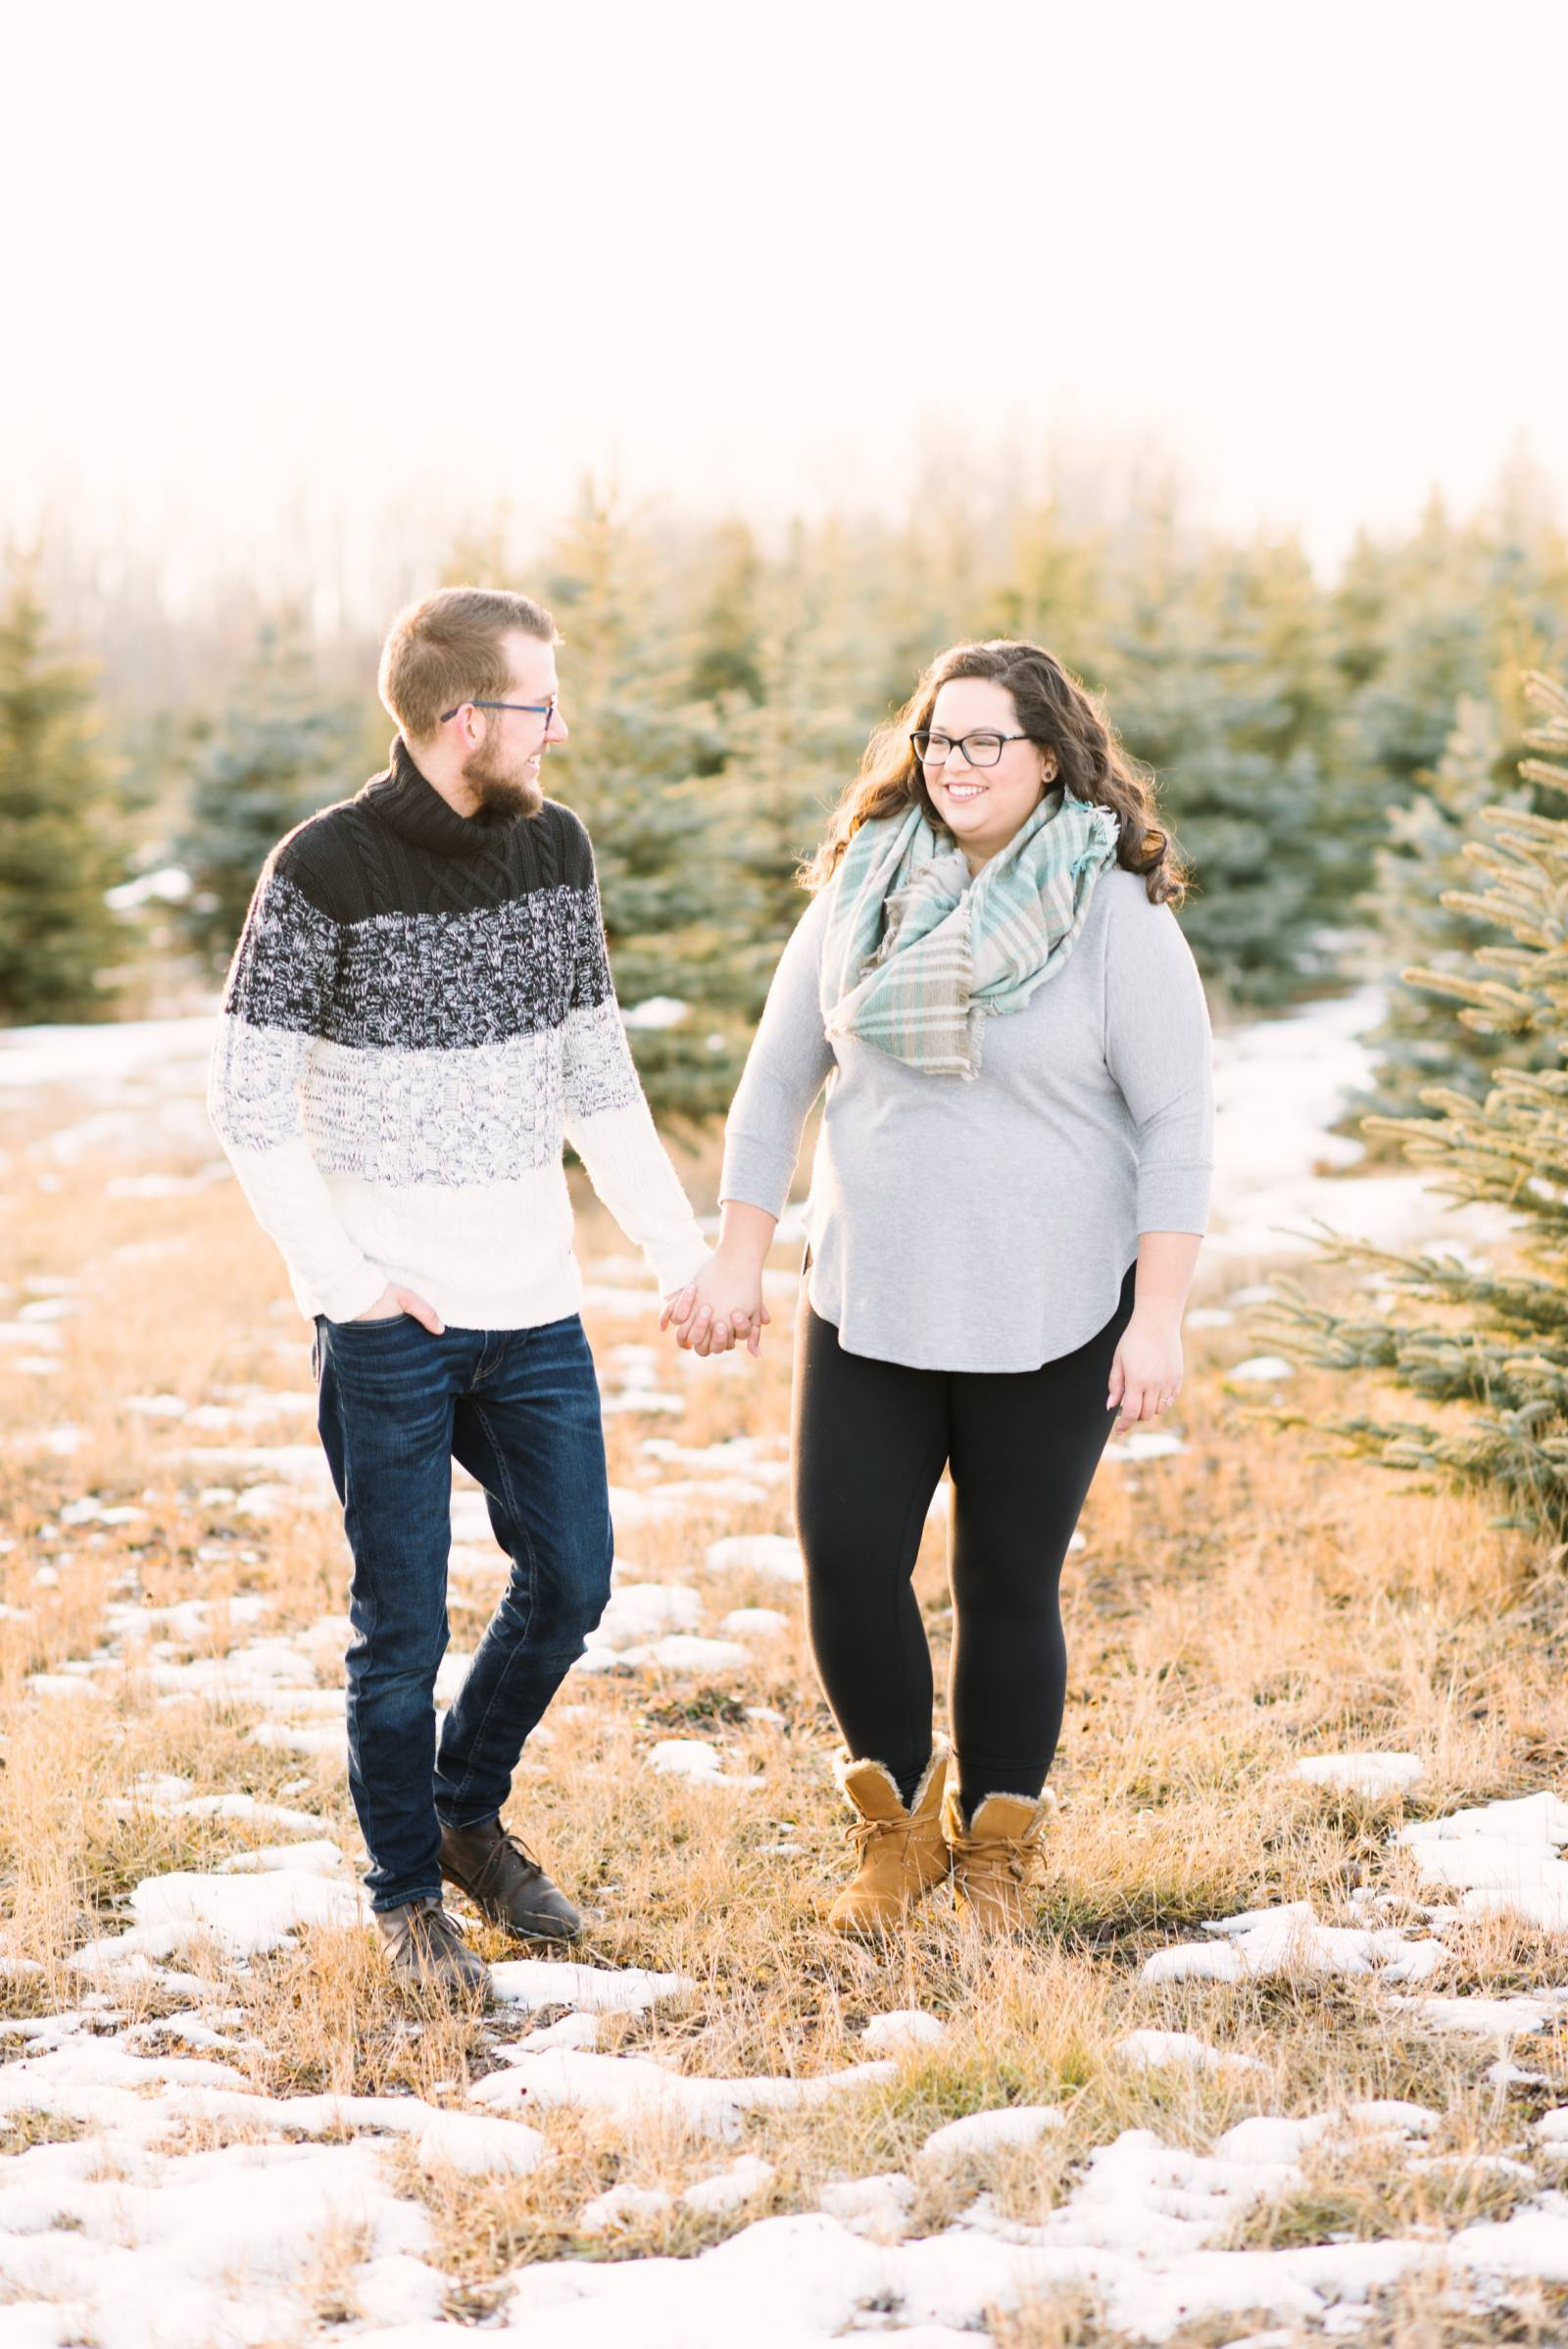 Newly engaged couple walking hand in hand through a Christmas tree farm at sunset